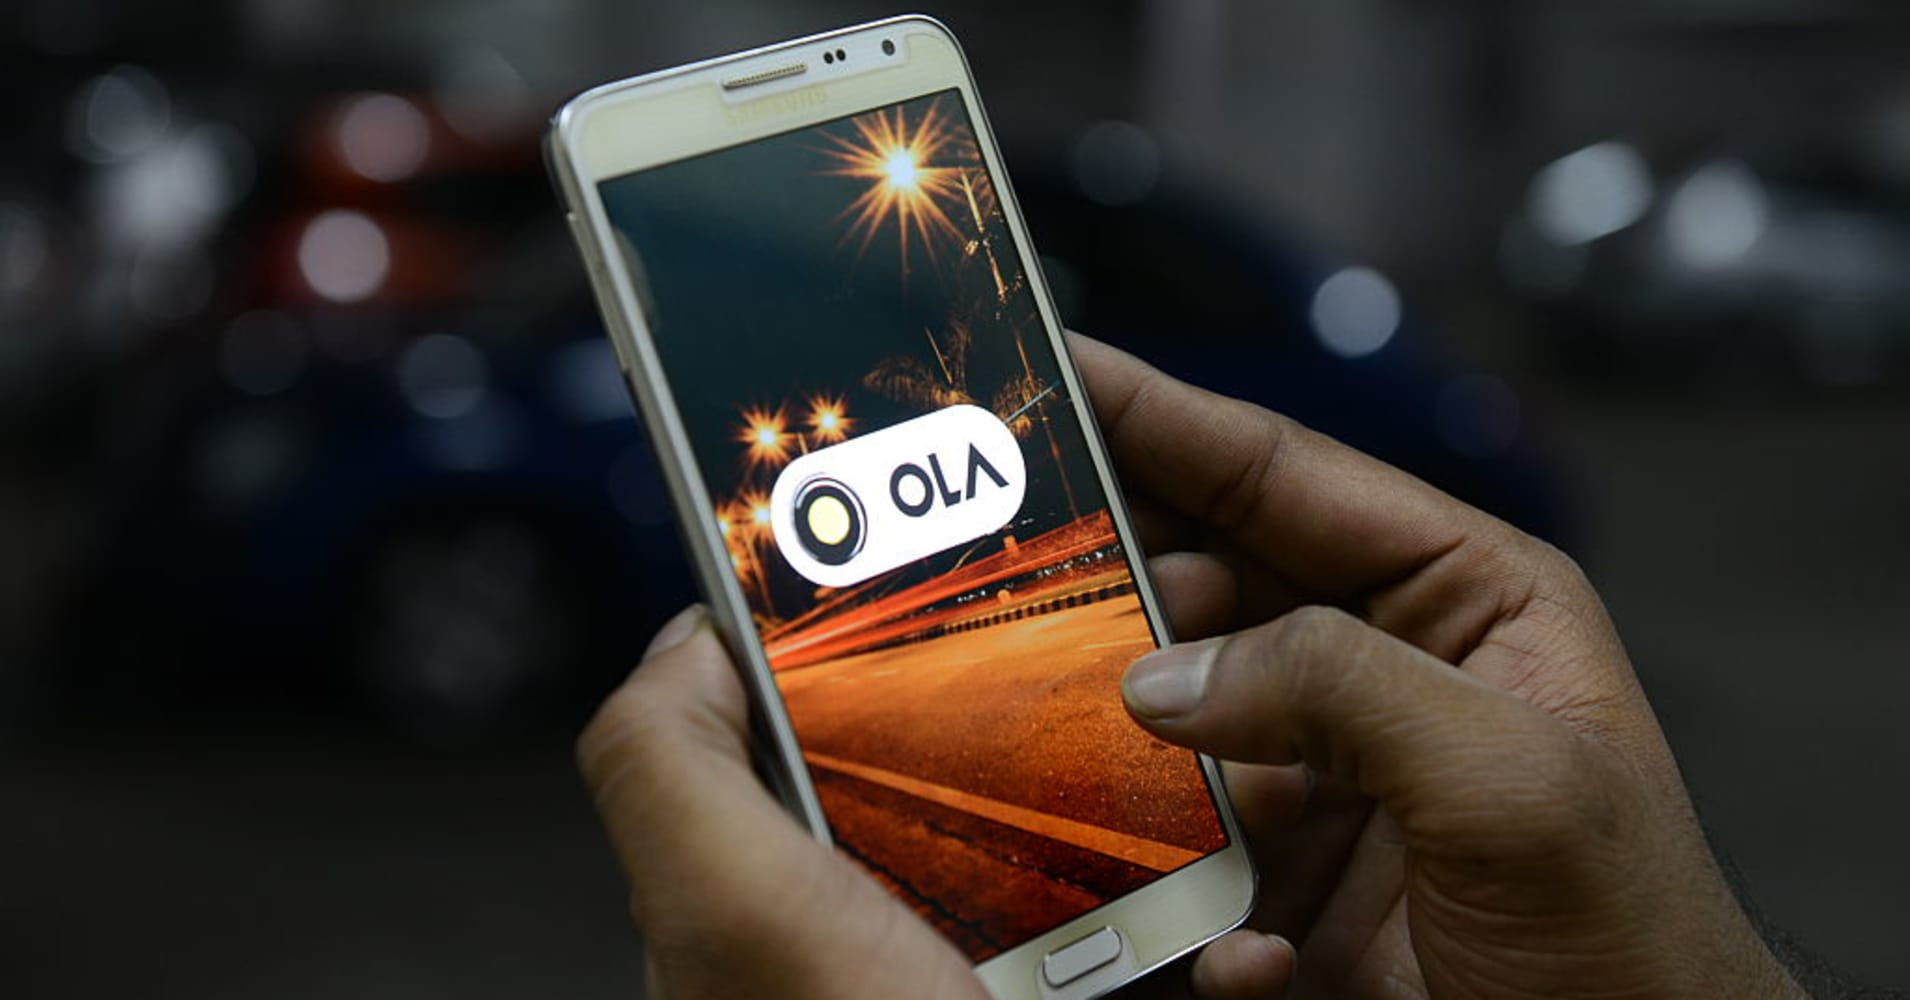 Indian ride-hailing company Ola invests $100 million in a scooter sharing startup